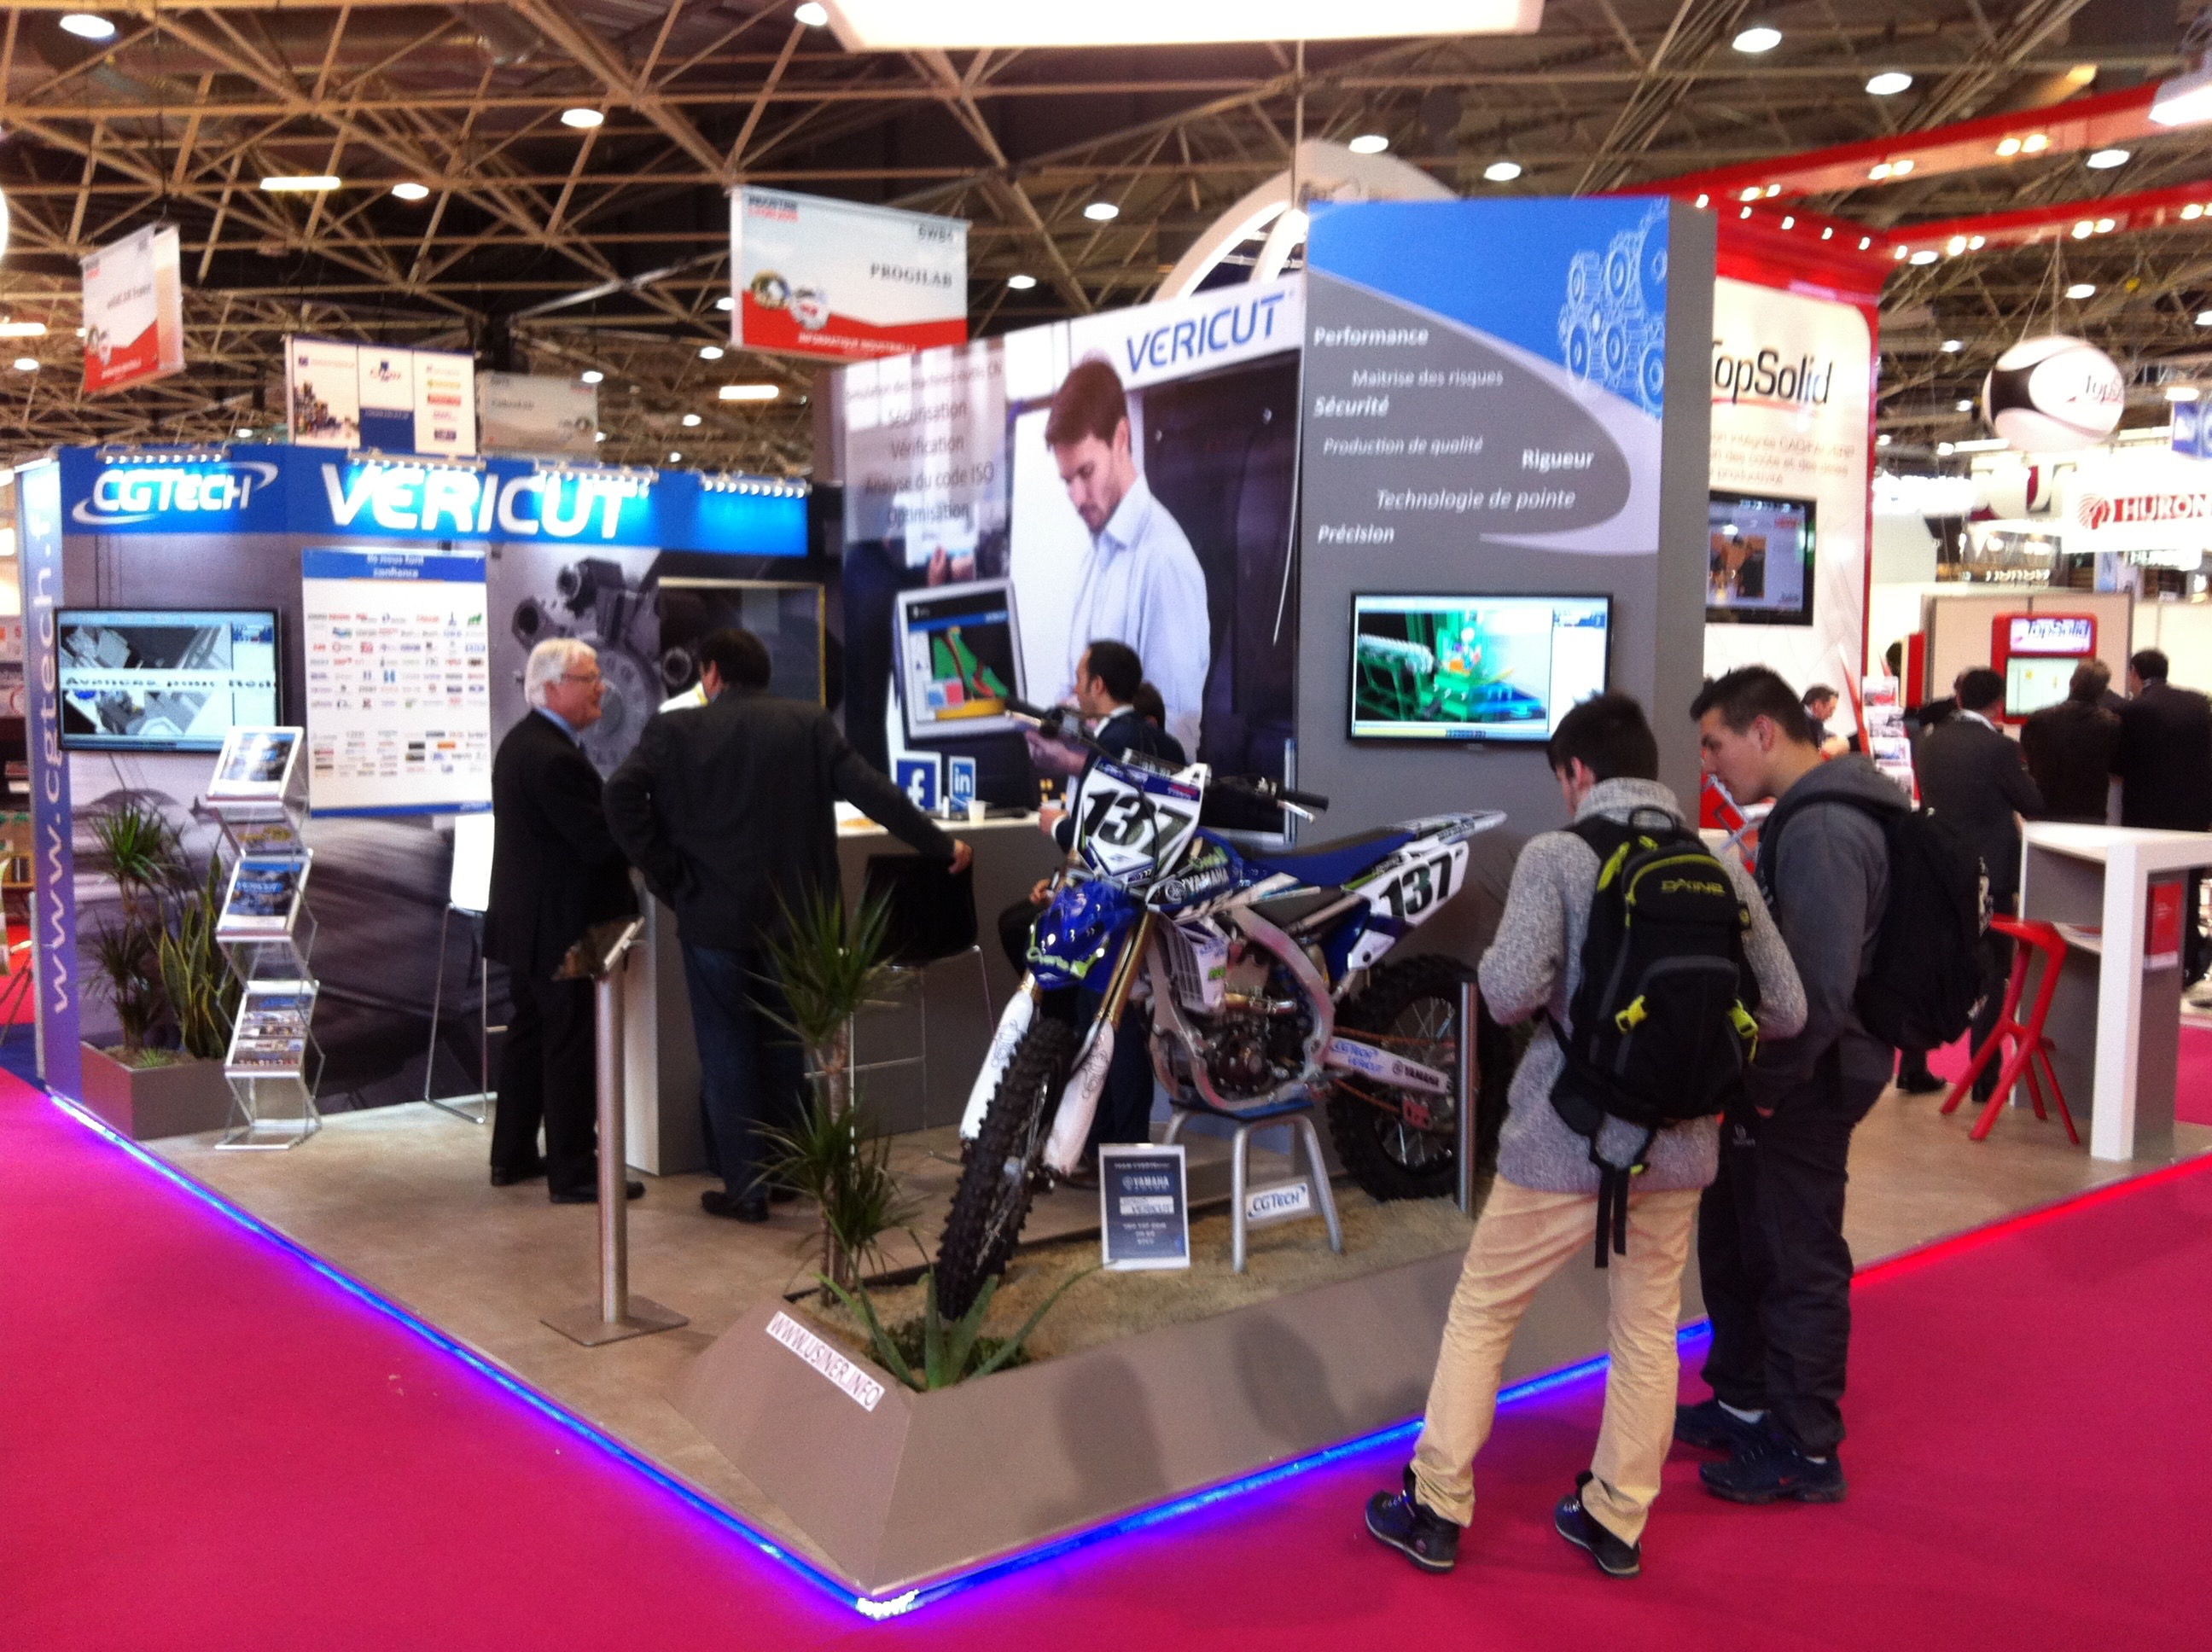 salon industrie paris 2016 cgtech vericut